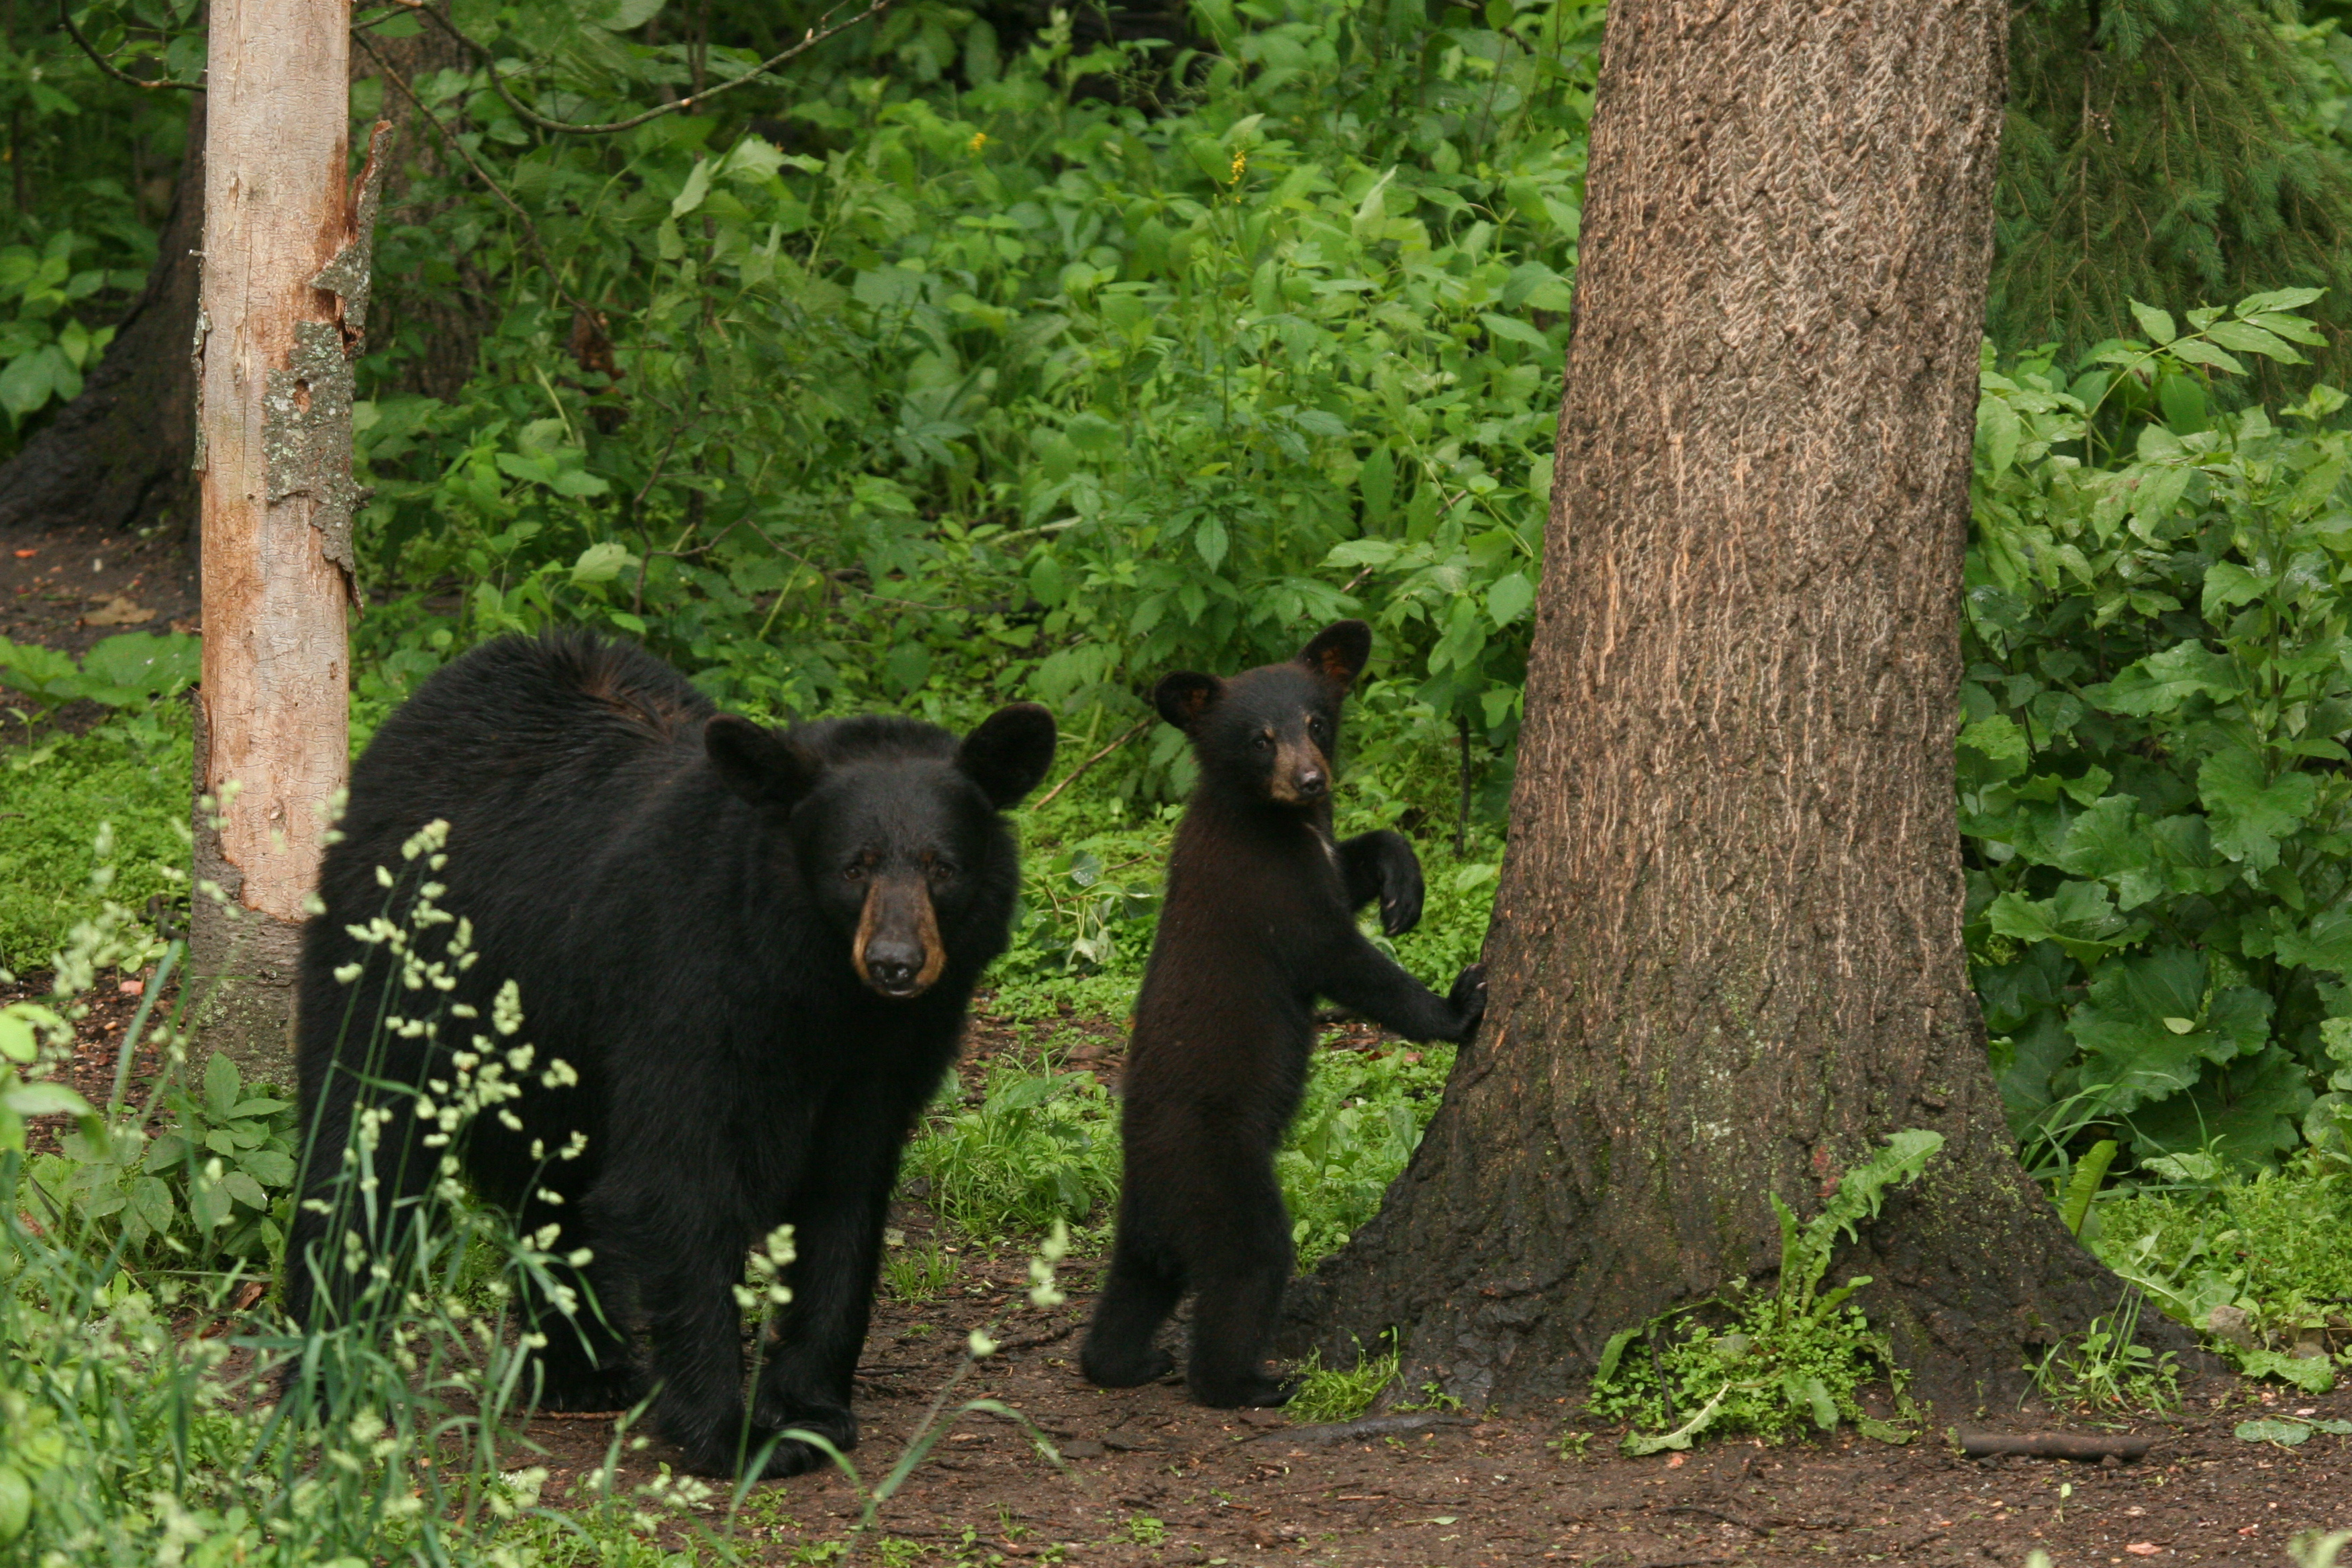 Mother and Child Black Bear